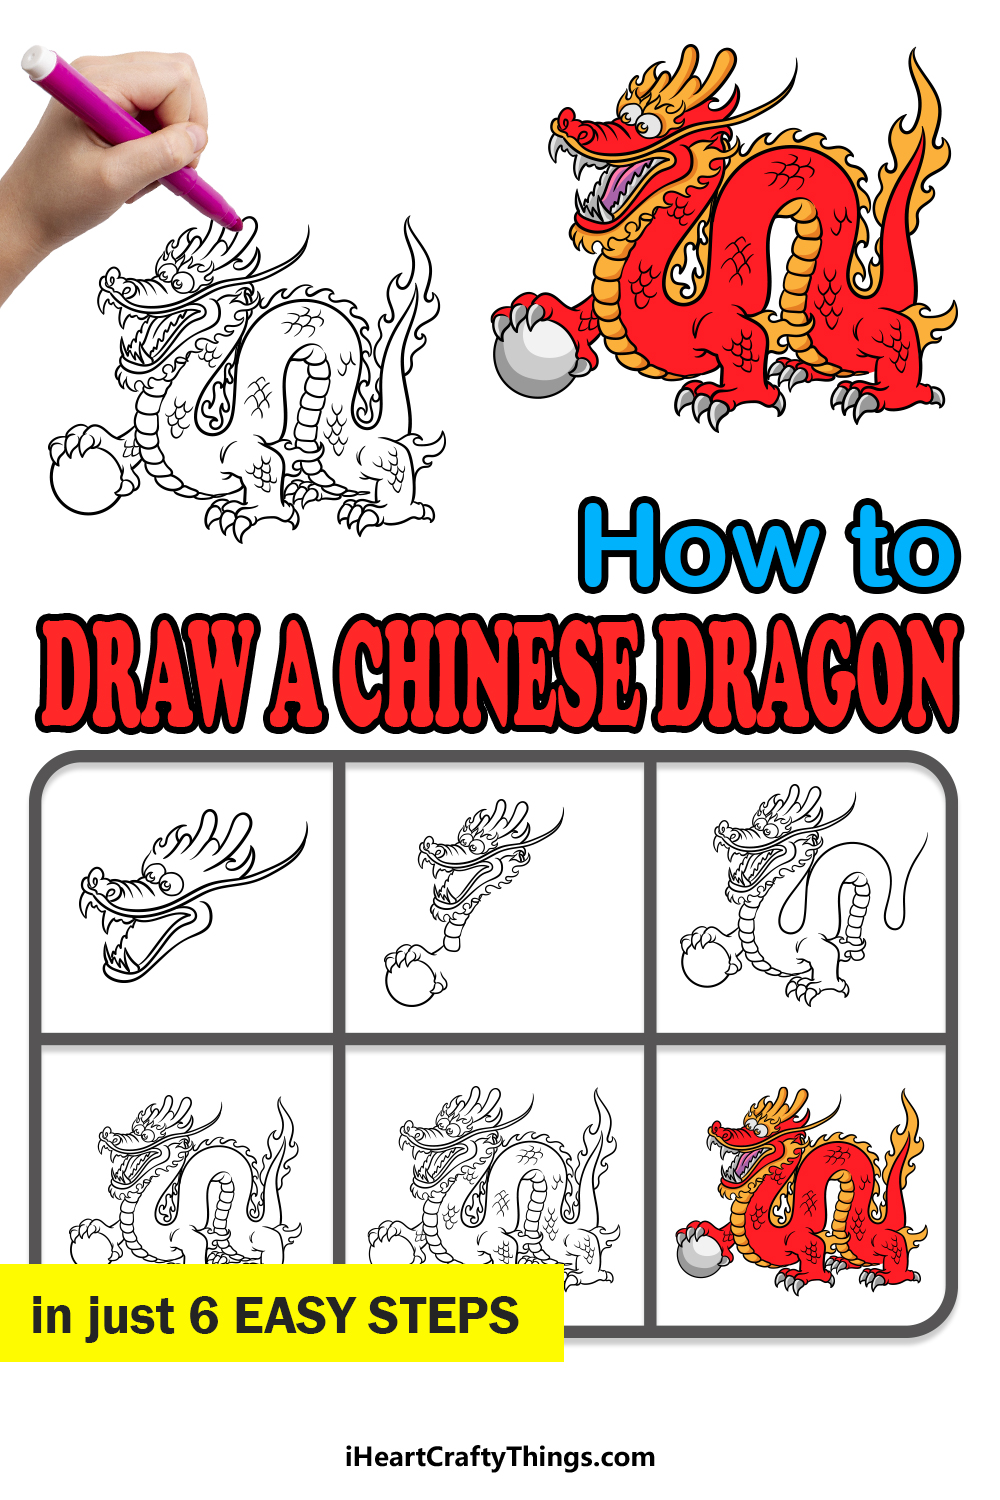 how to draw a Chinese dragon in 6 easy steps